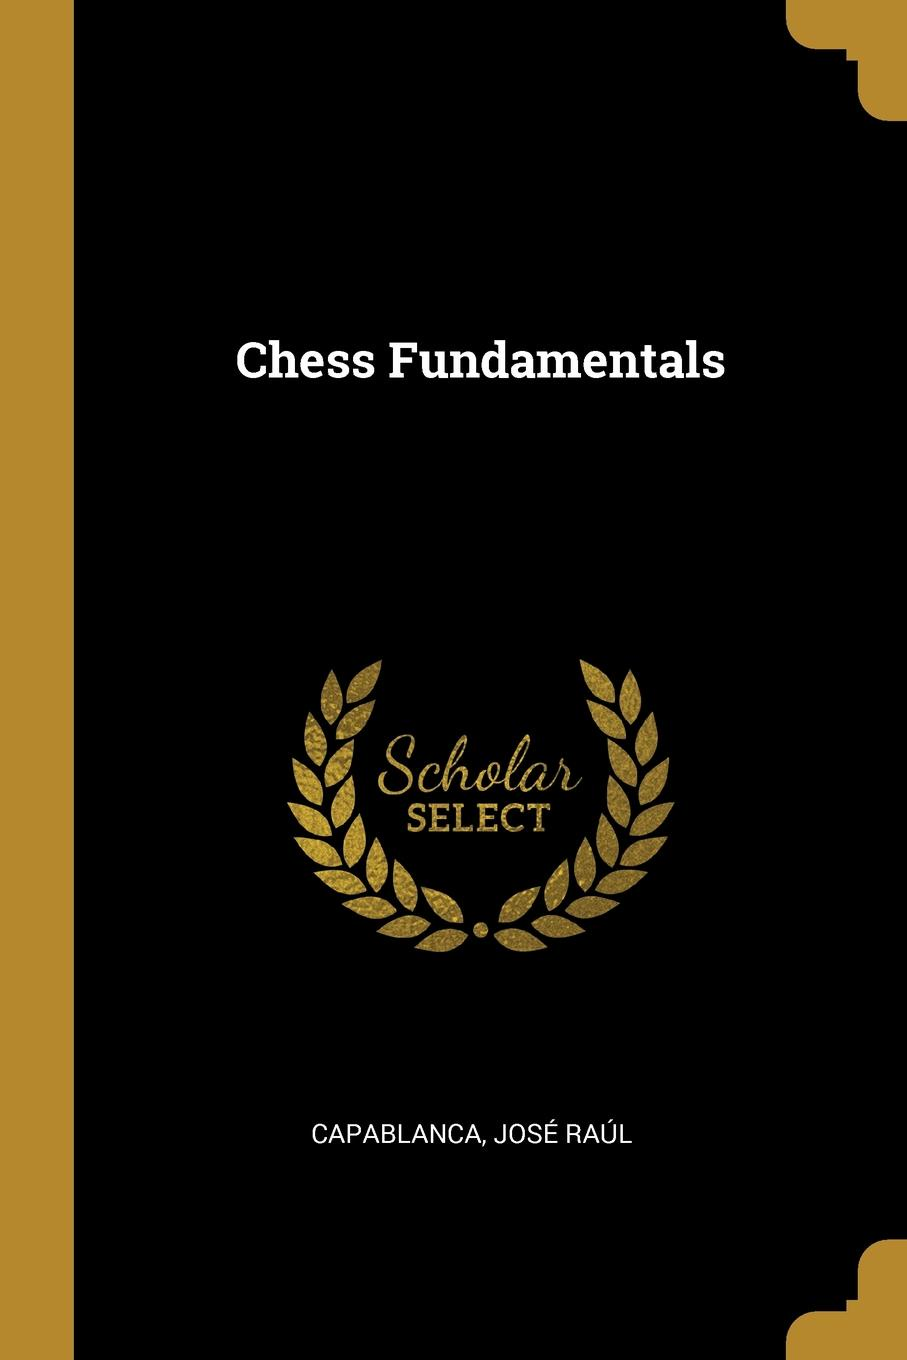 Capablanca José Raúl. Chess Fundamentals